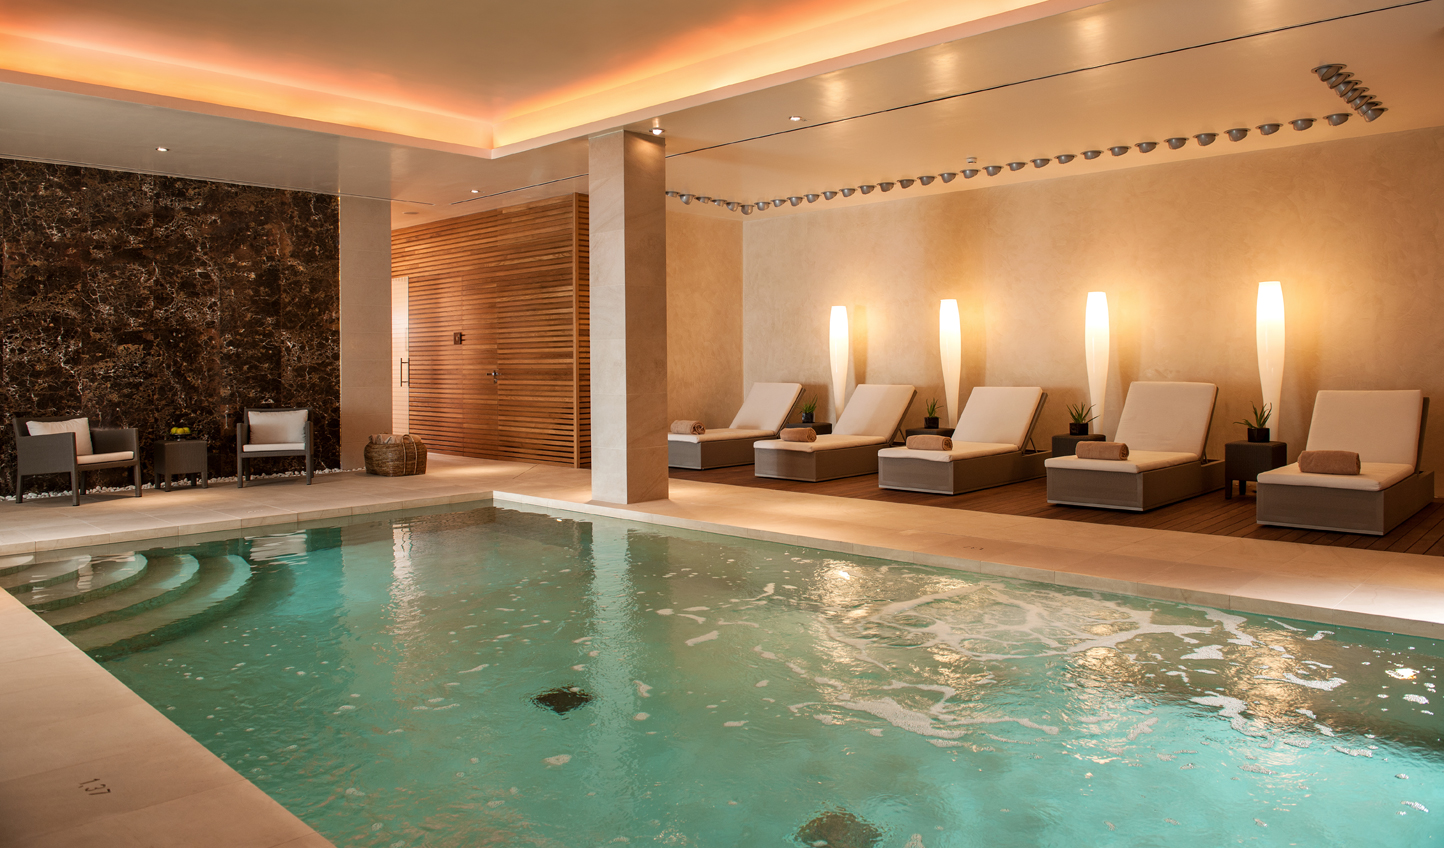 Take a dip in the pool after your spa treatment